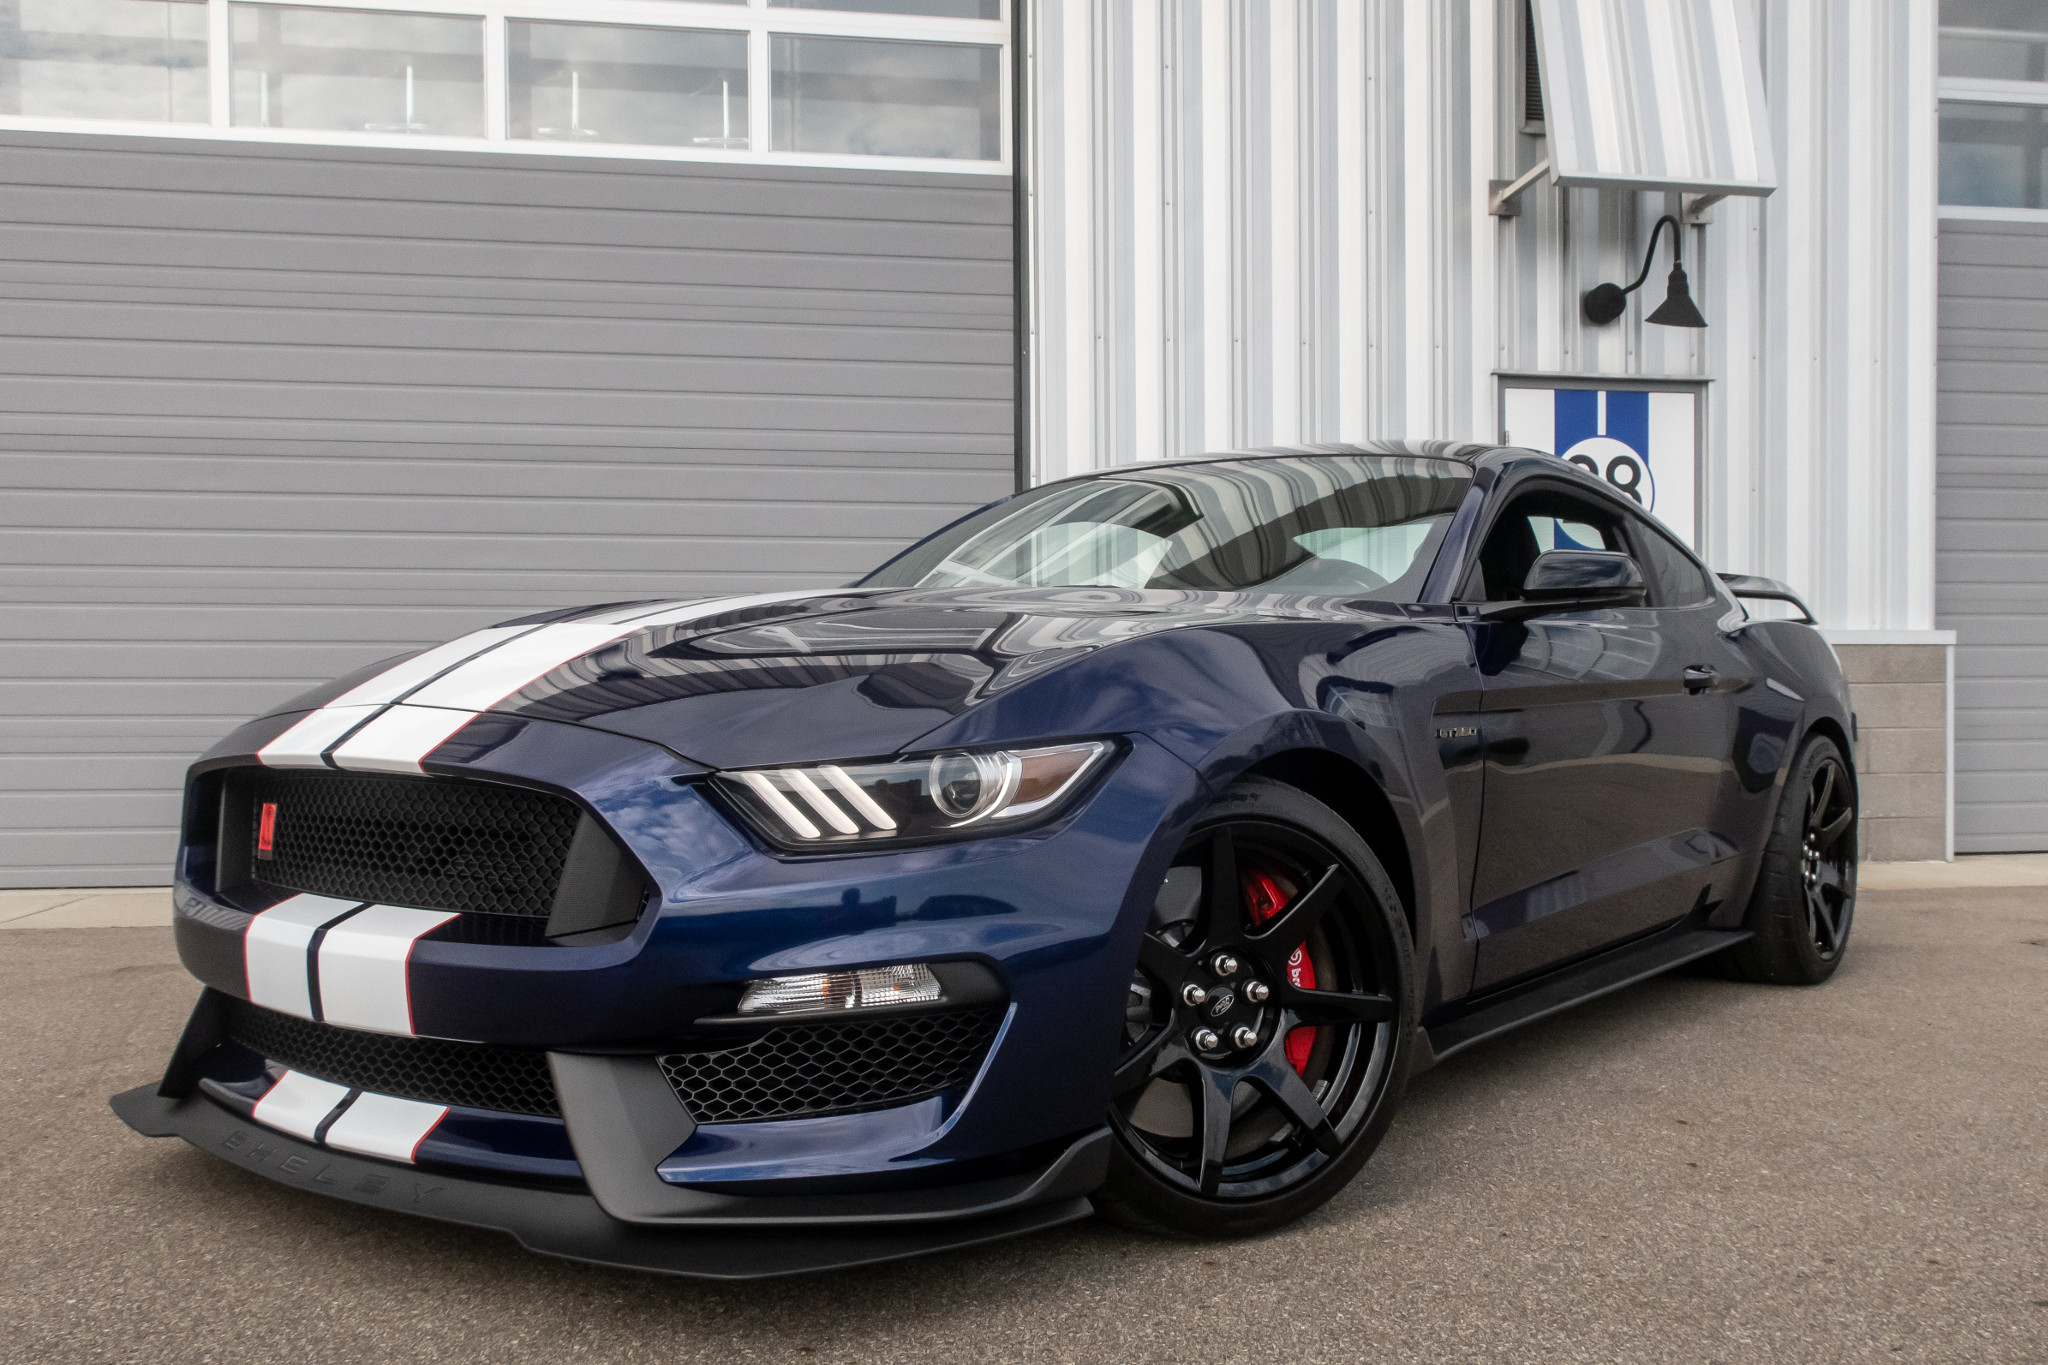 2020 Ford Mustang Shelby GT350R — Track Ready, Street Capable